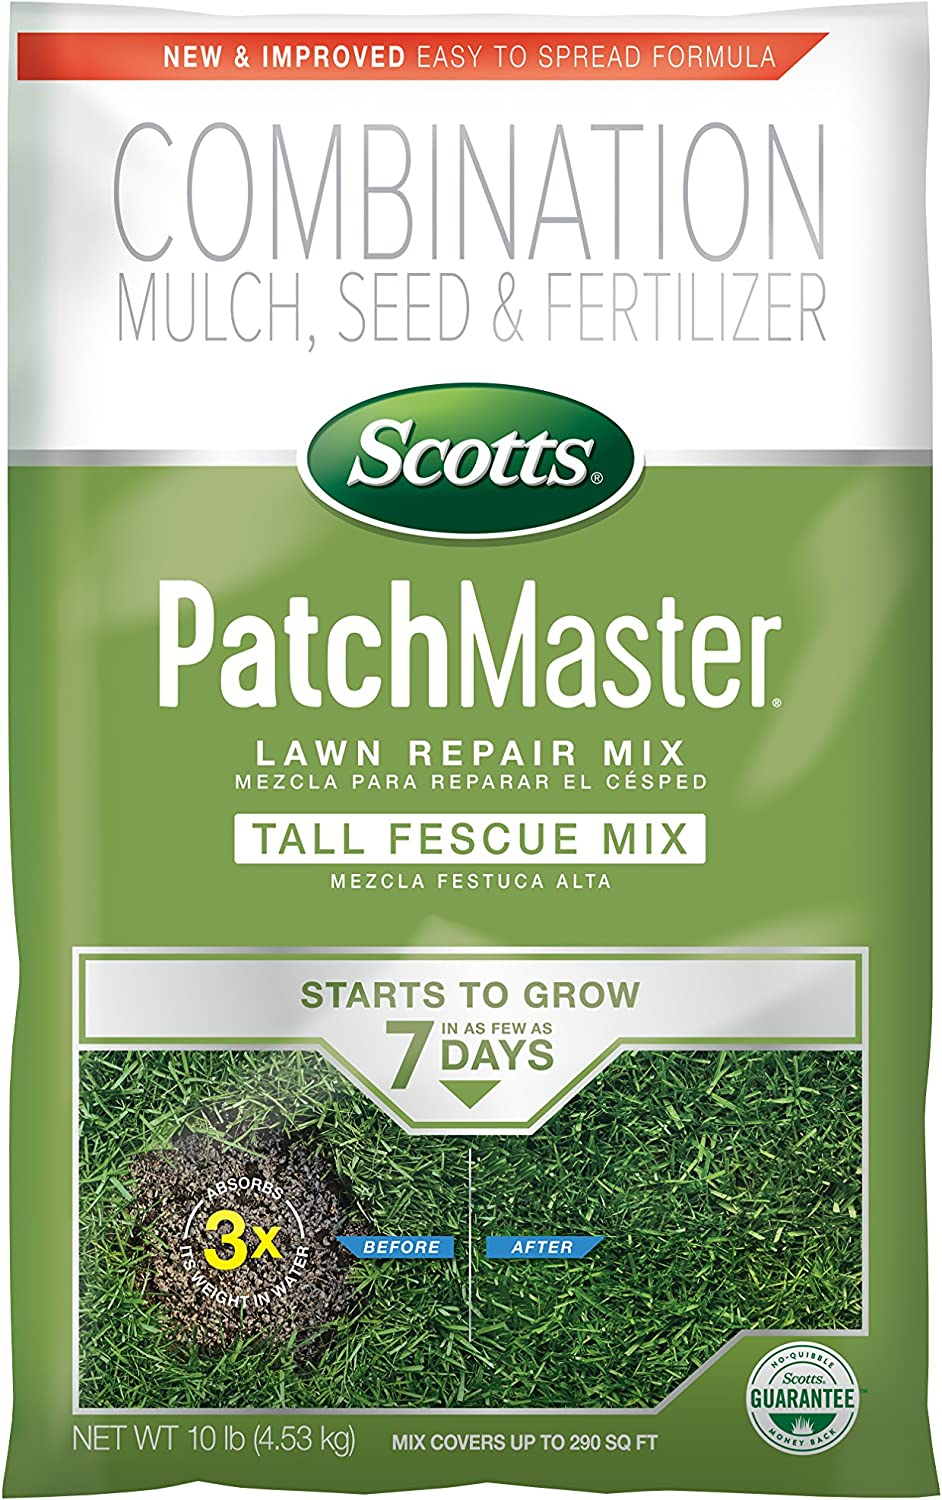 Scotts PatchMaster Lawn Repair Mix Tall Fescue Mix - 10 lb., All-In-One Bare Spot Repair, Feeds for up to 6 Weeks for Fast Growth and Thick Results, Covers Up To 290 sq. ft.